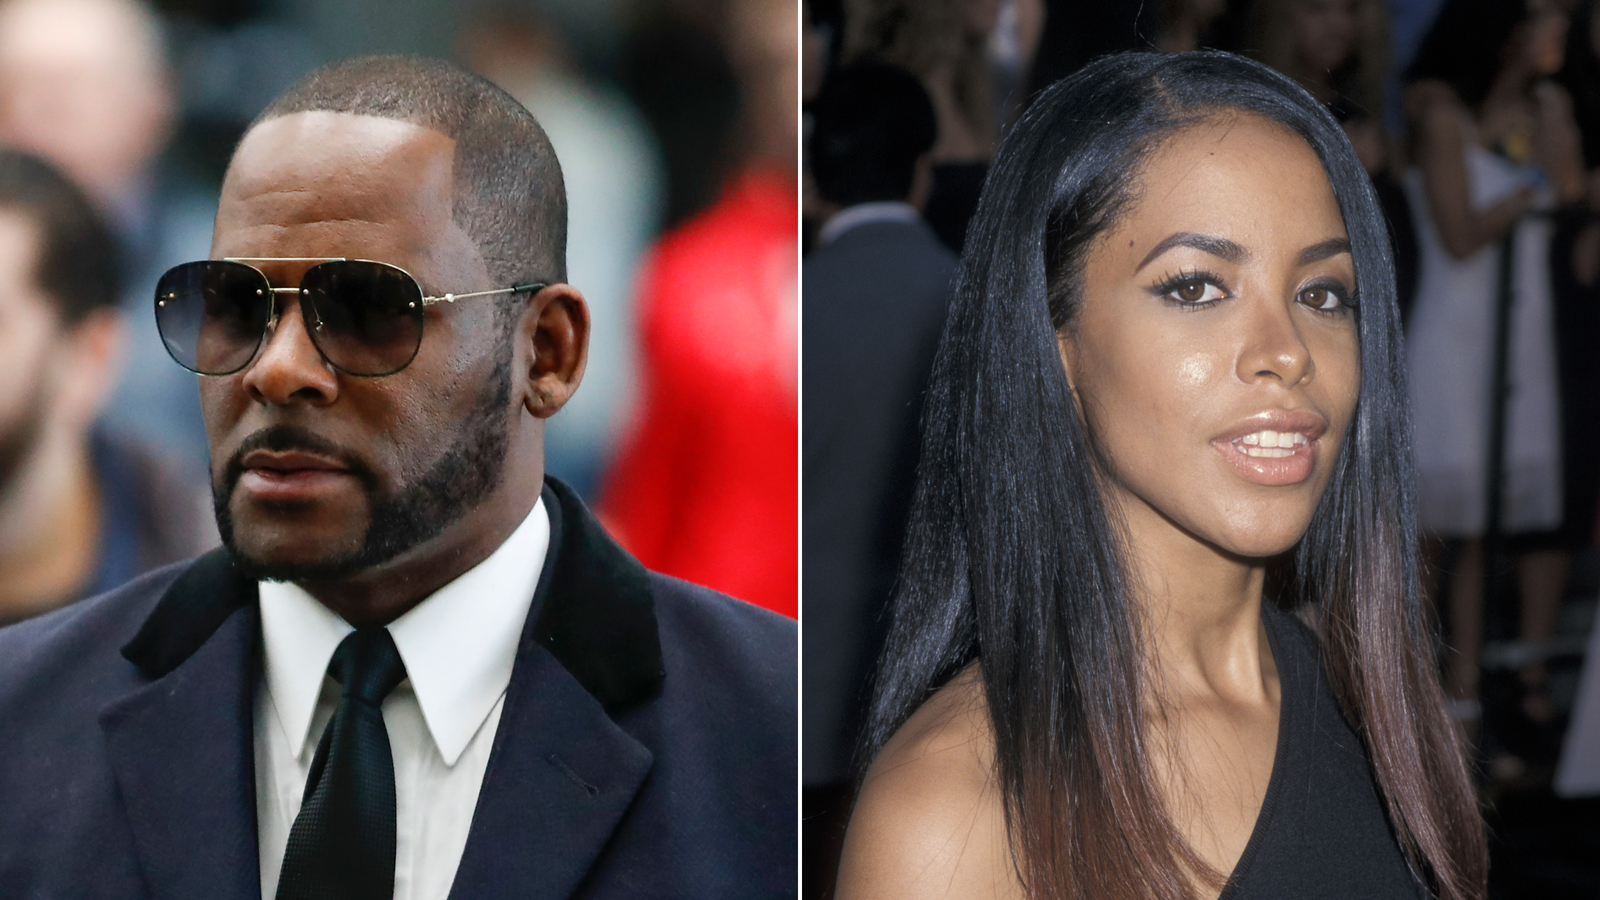 NYT: R. Kelly used bribes to marry Aaliyah when she was 15, charges allege